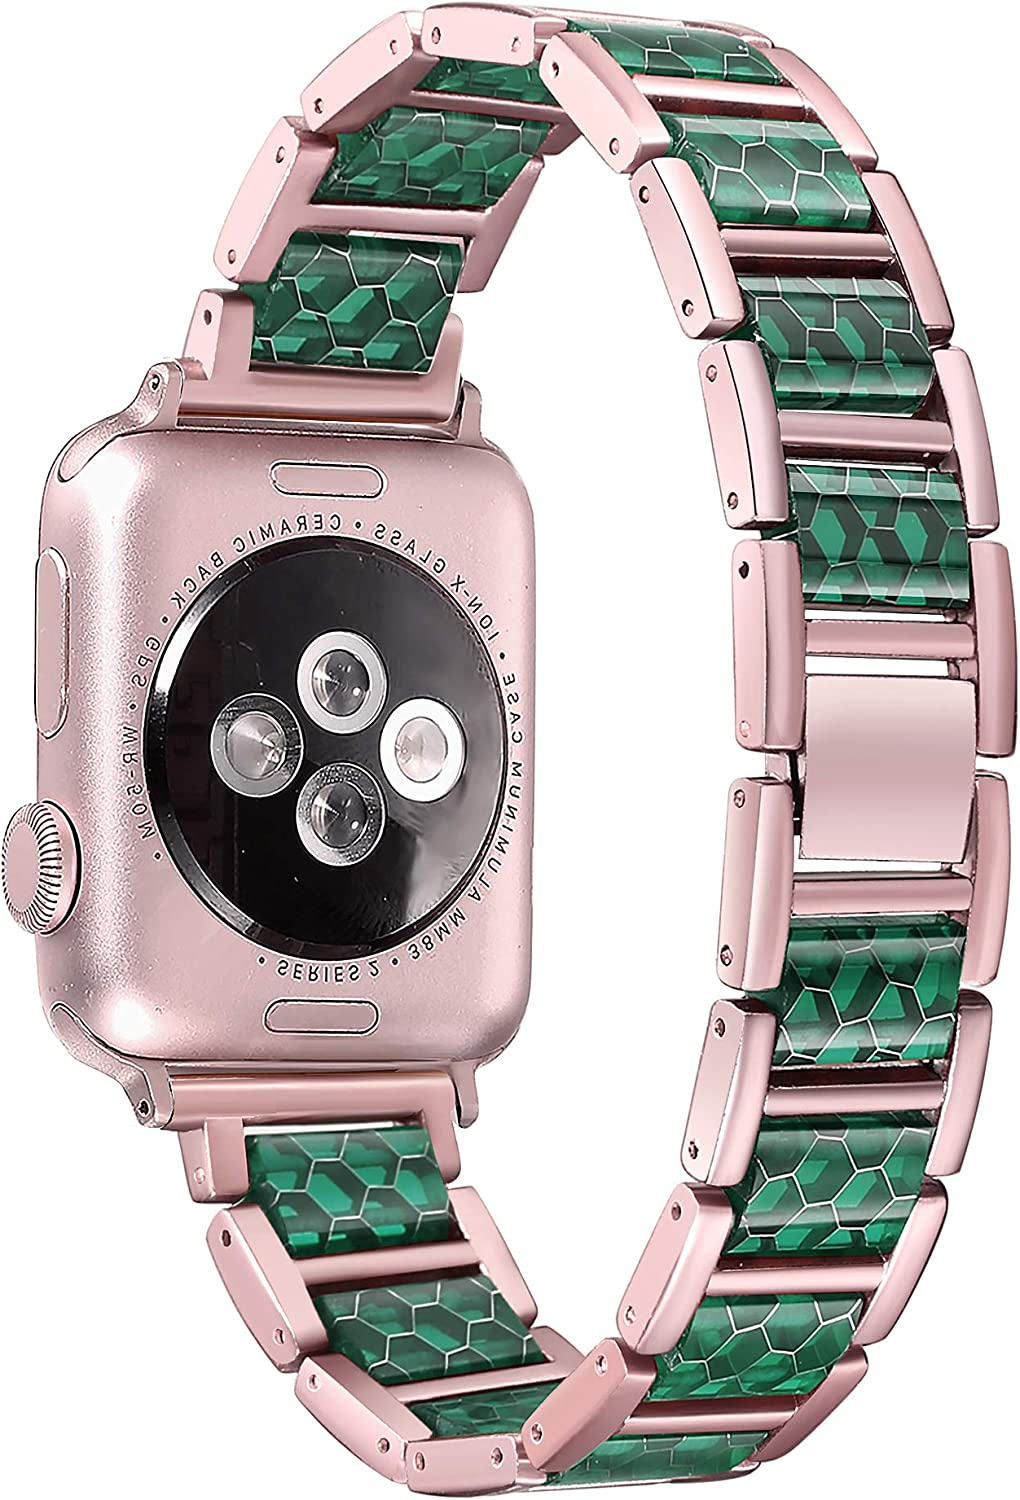 Secbolt Metal Bands Compatible with Apple Watch Band 38mm 40mm (Rose Gold Green), Metal Bands with Resin Ornaments for iwatch Series 5/4/3/2/1 Women Men